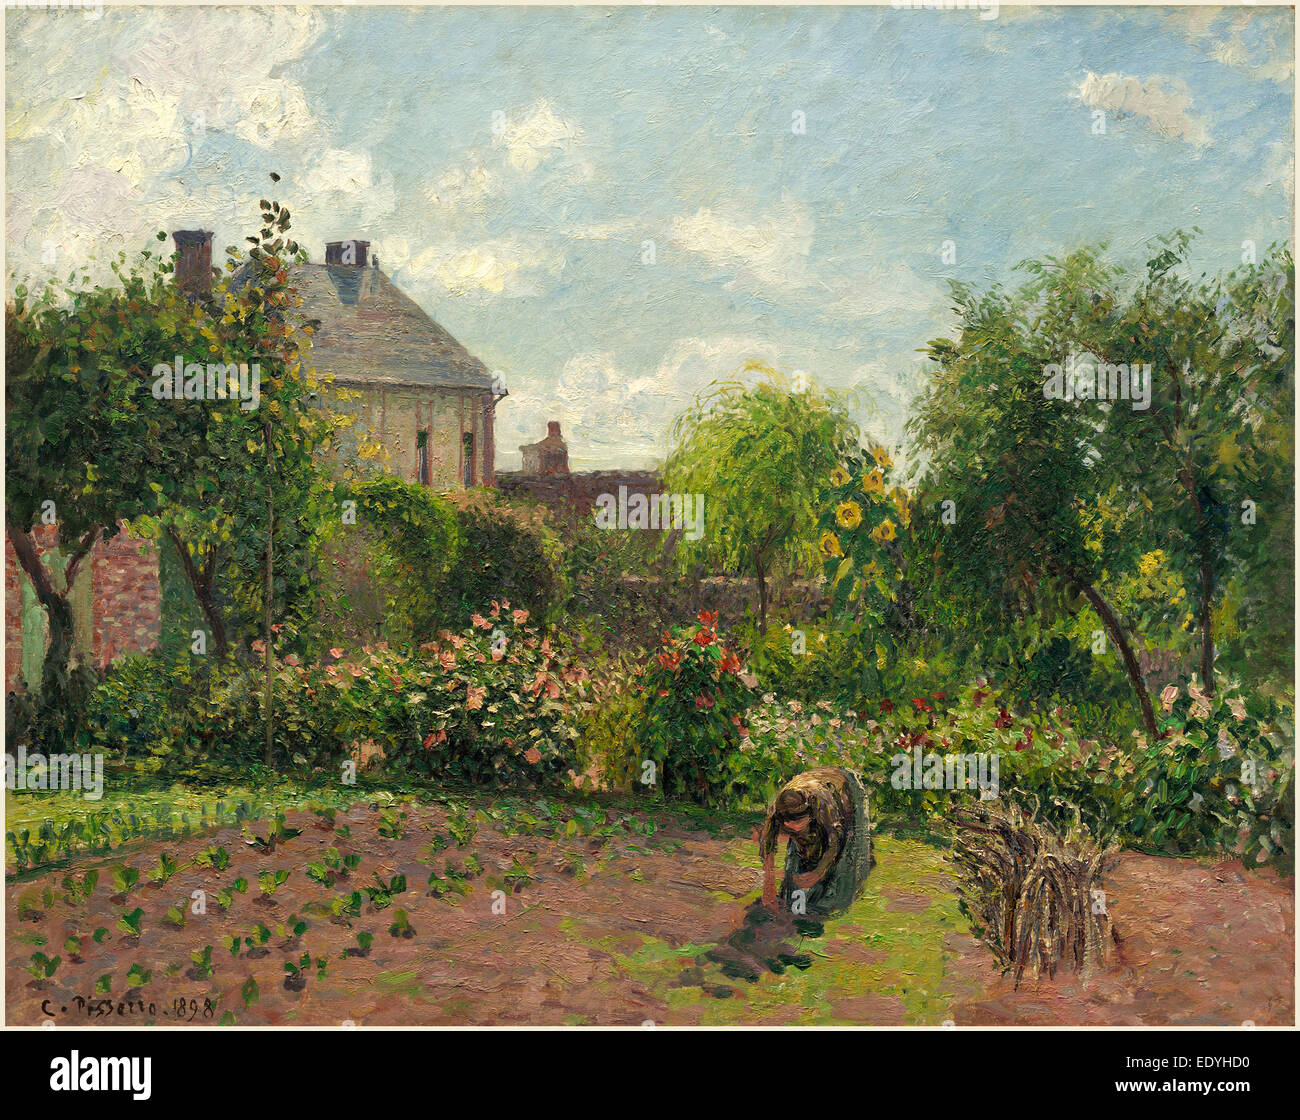 Camille Pissarro, French (1830-1903), The Artist's Garden at Eragny, 1898, oil on canvas - Stock Image